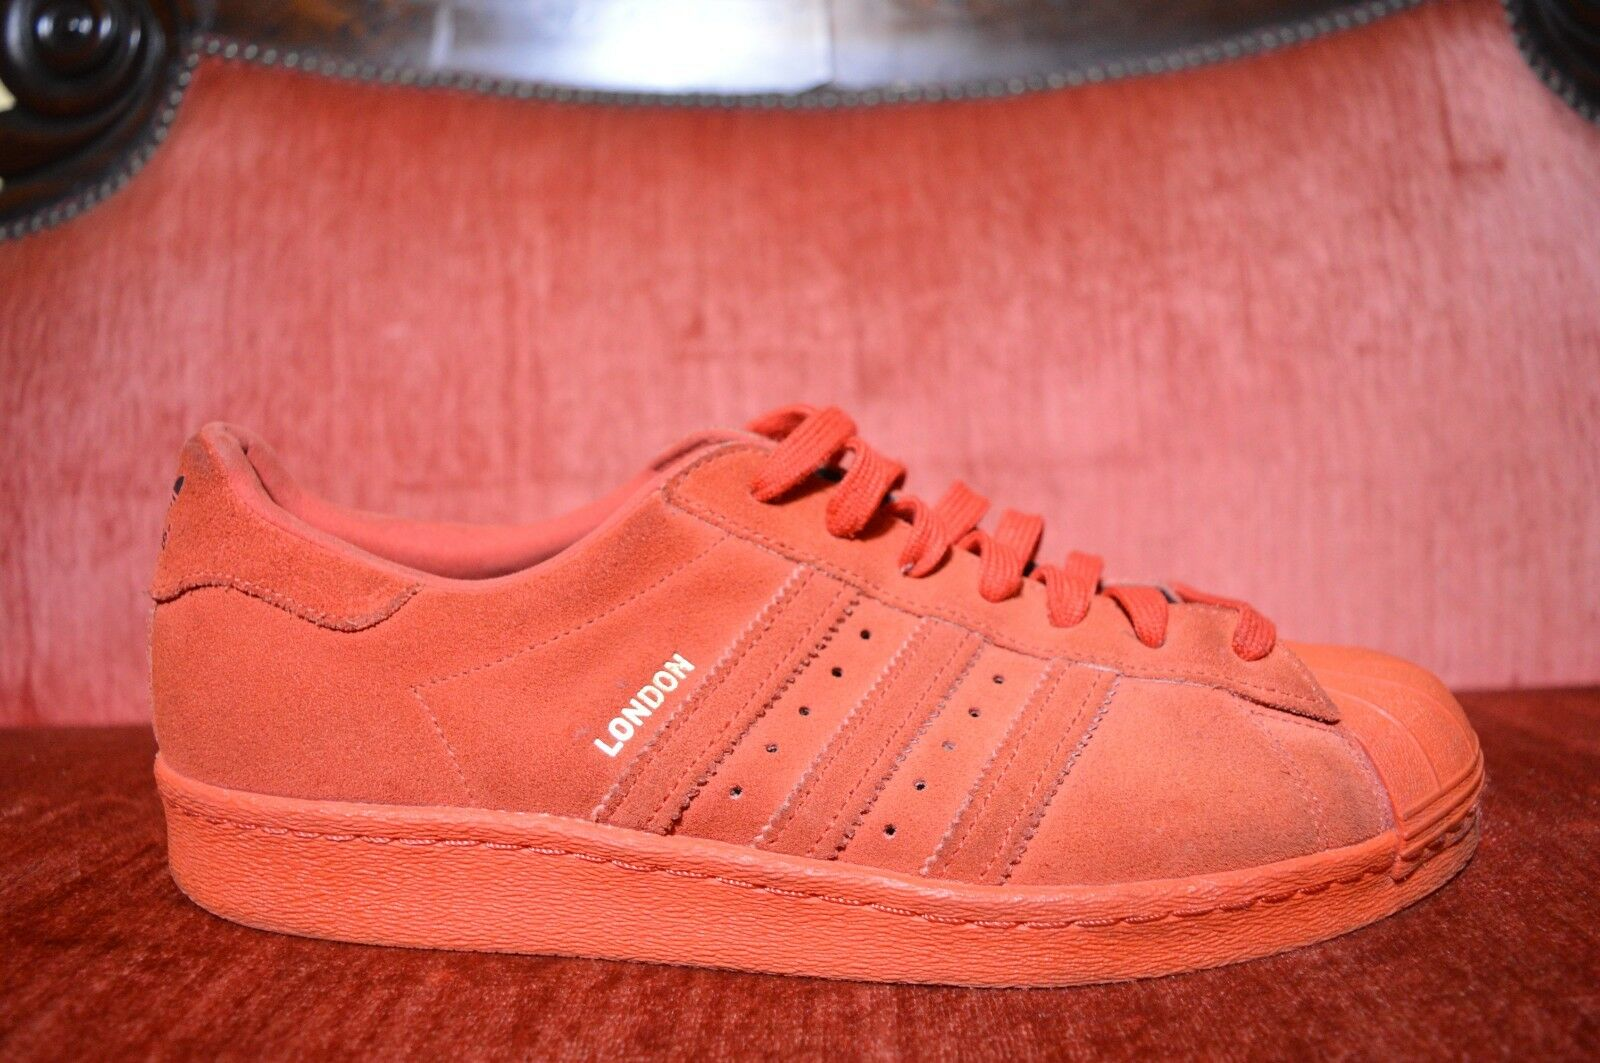 Adidas Superstar 80s City Series London Red Triple Suede Shoes Size 11 B32664